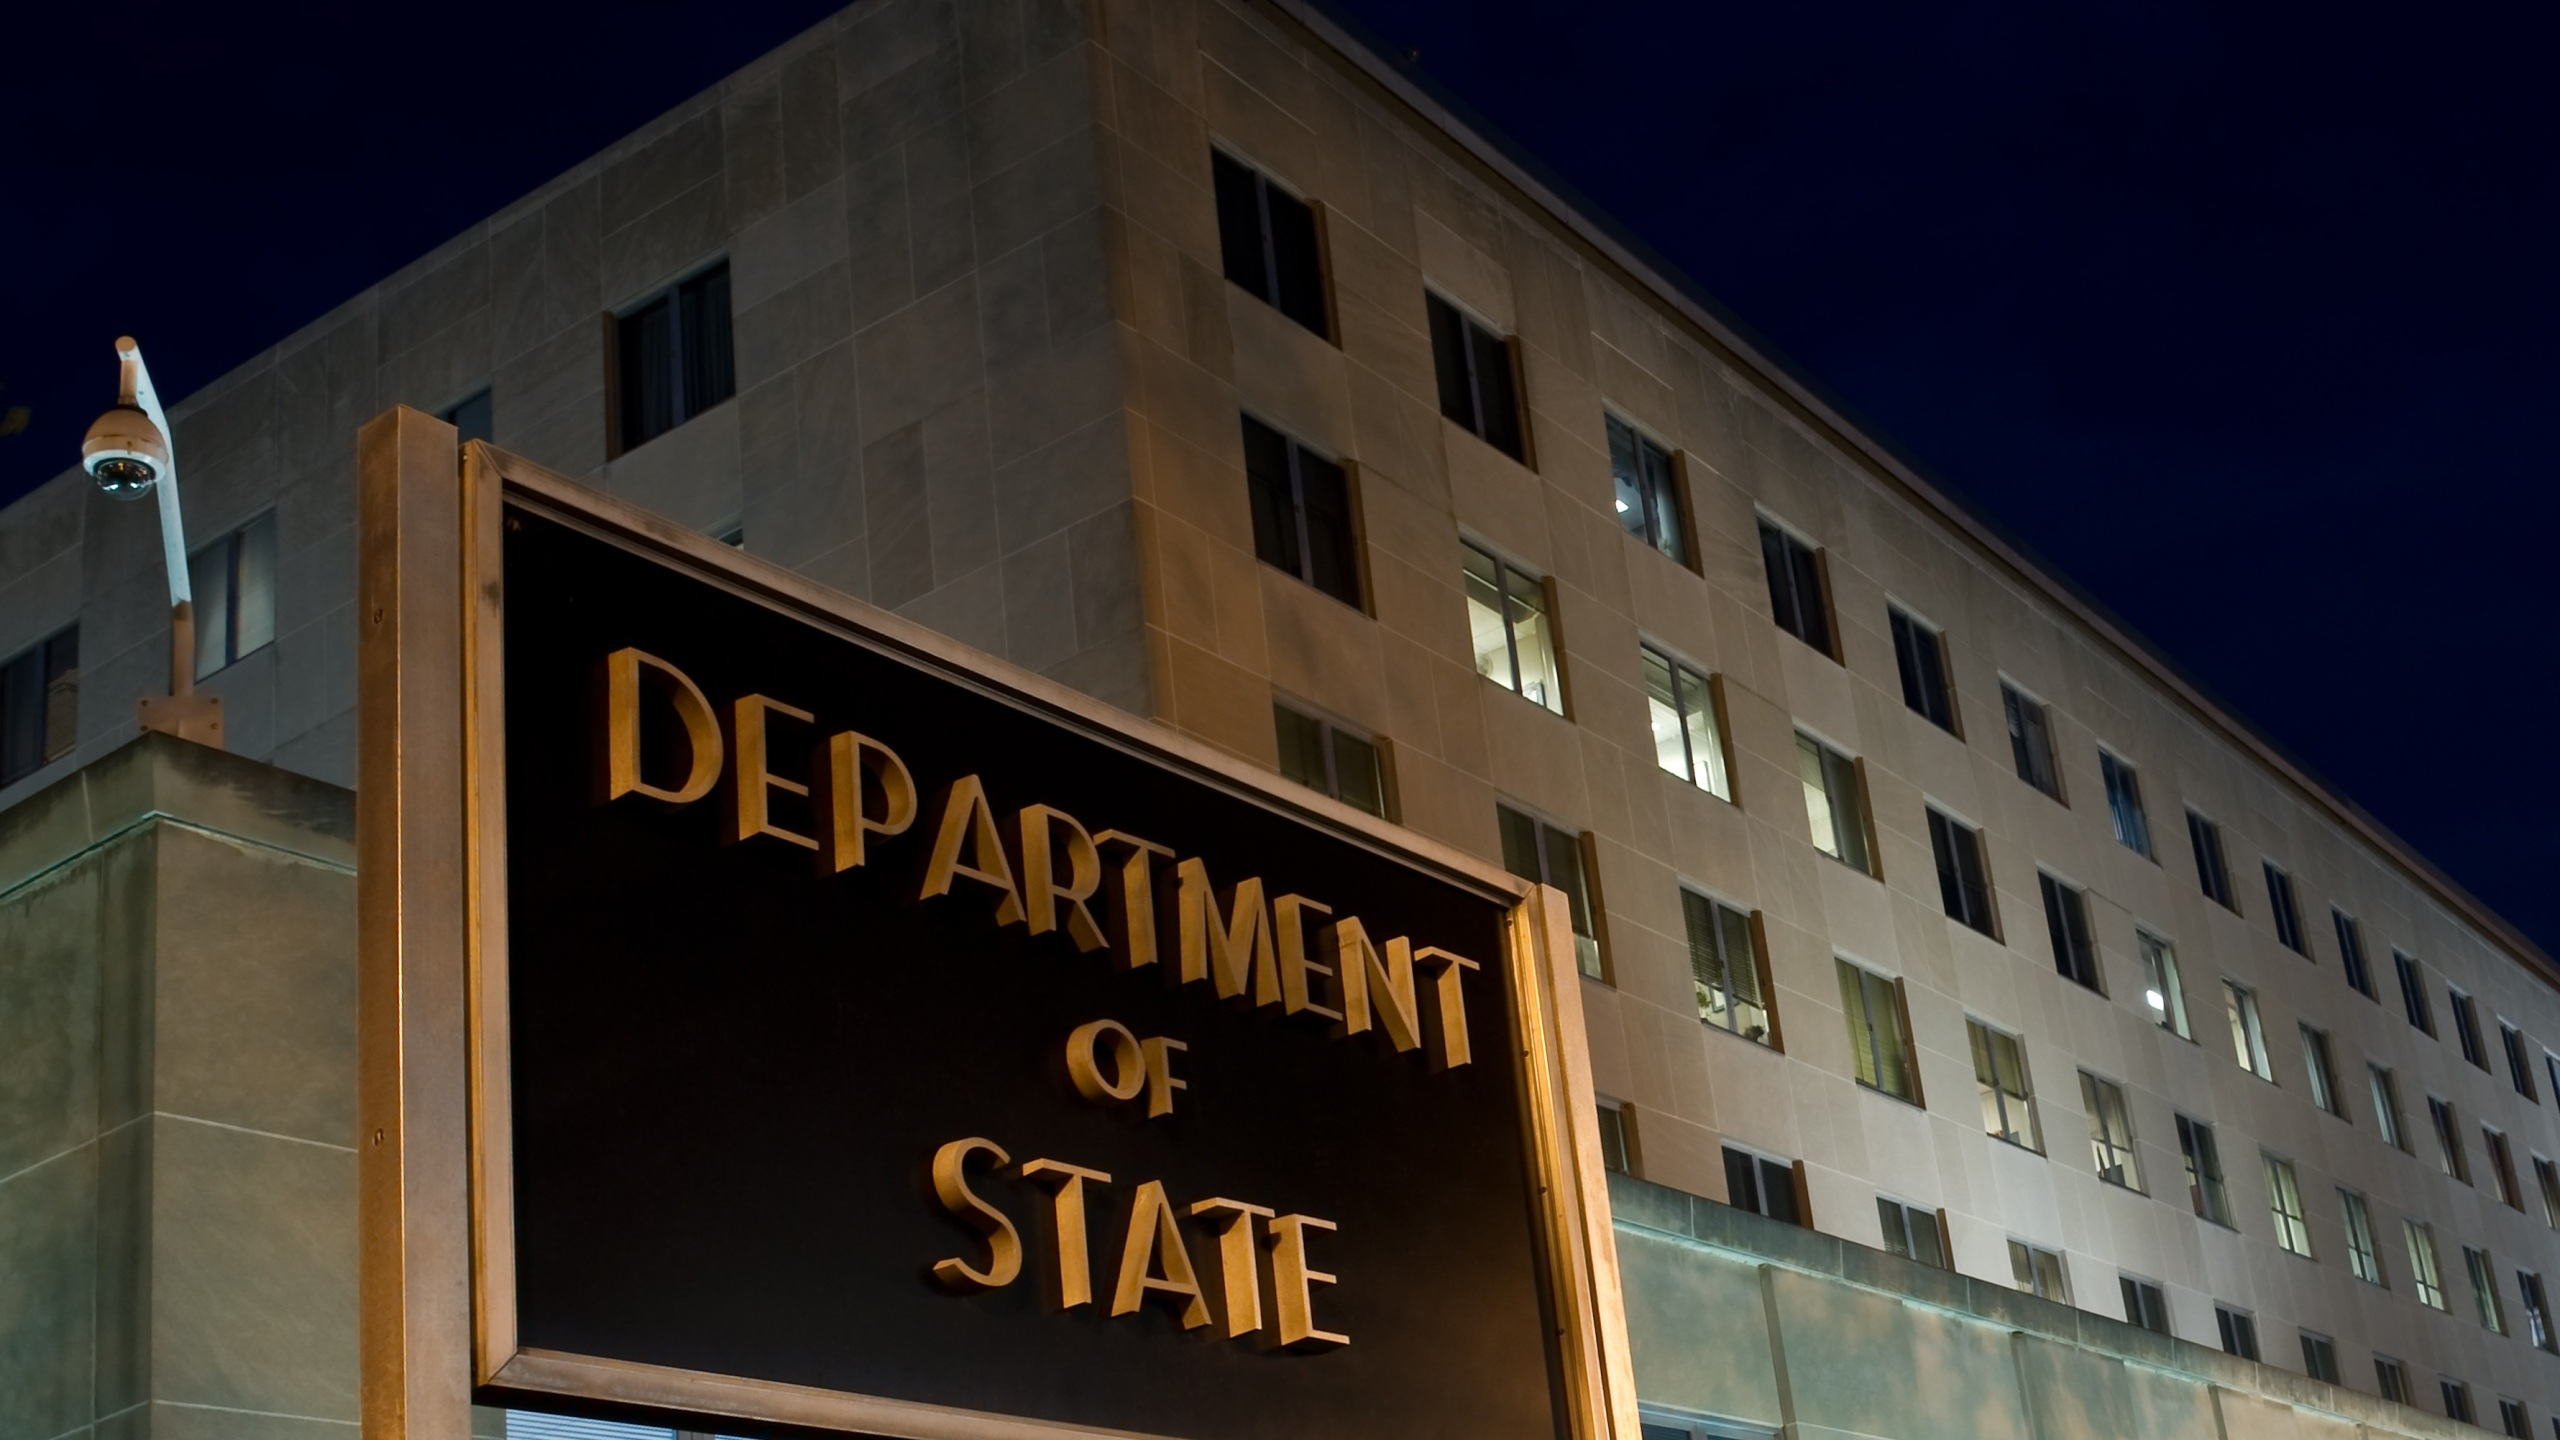 The U.S. State Department is seen on Nov. 29, 2010, in Washington, D.C. (Credit: NICHOLAS KAMM/AFP/Getty Images)